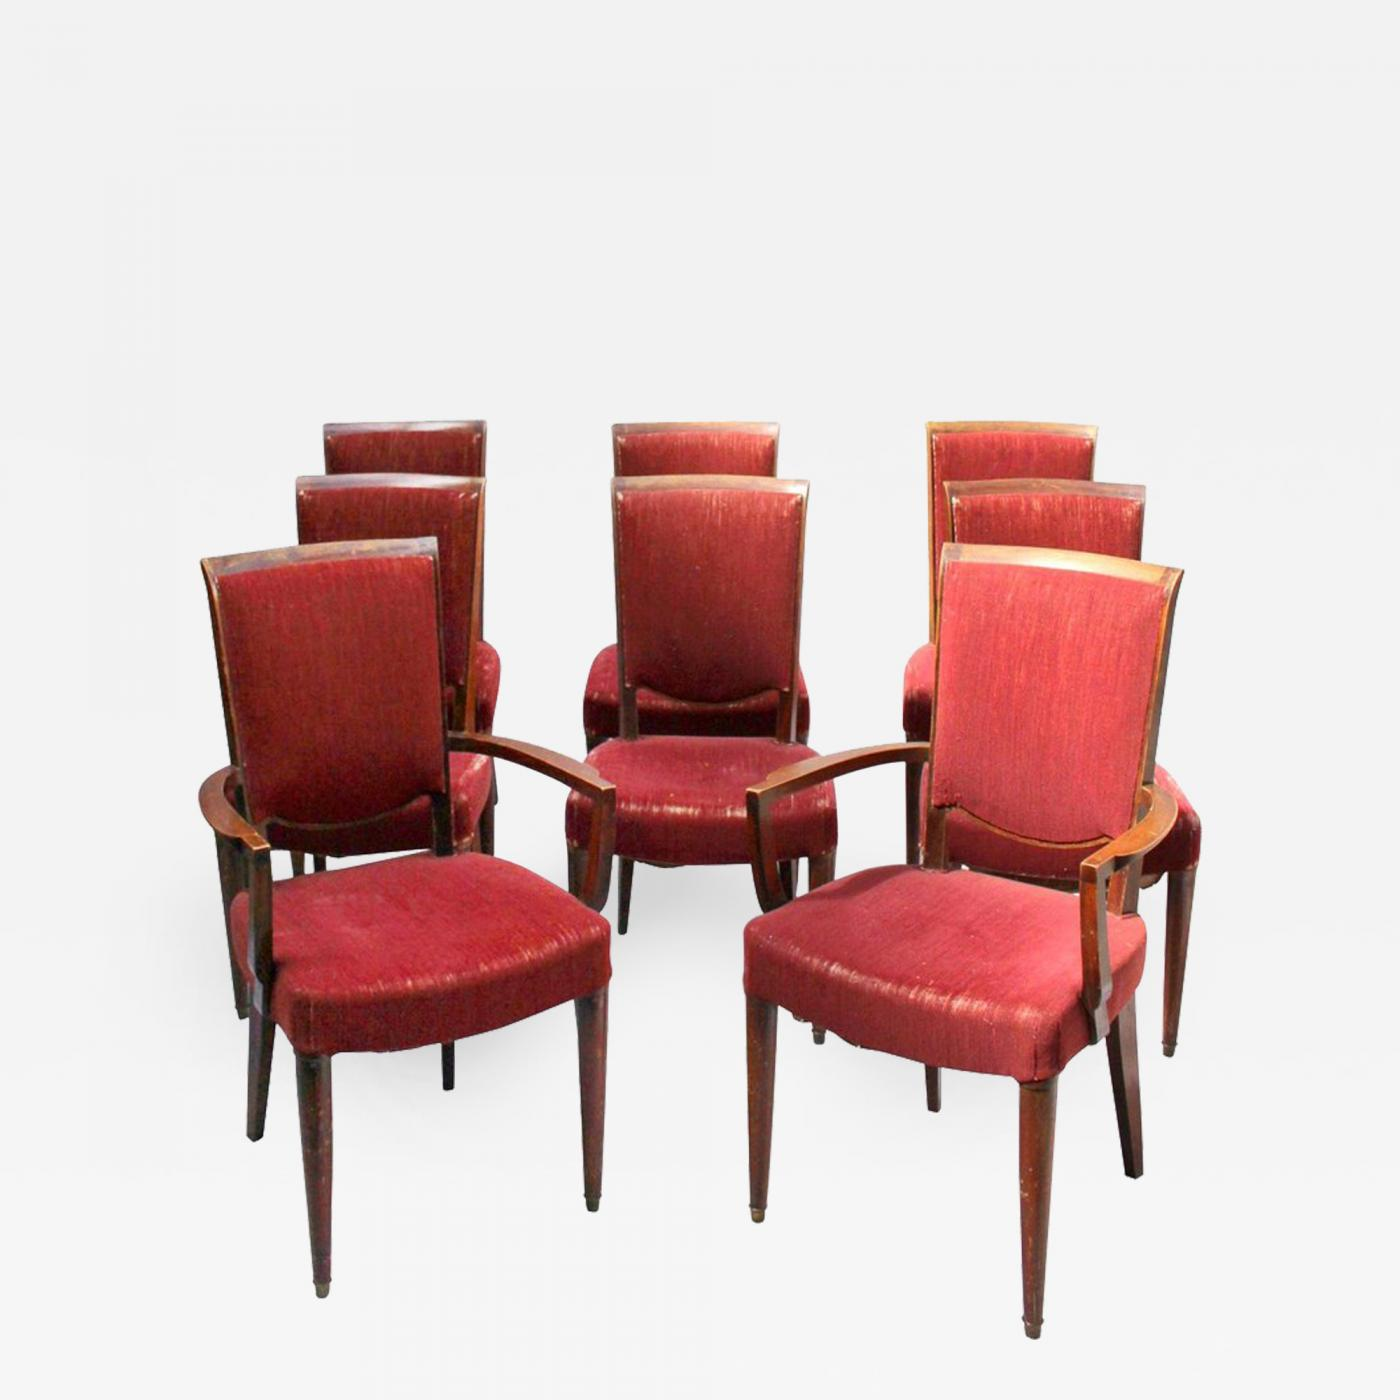 Art Deco Dining Chairs Jules Leleu Set Of 8 Fine French Art Deco Dining Chairs By Jules Leleu